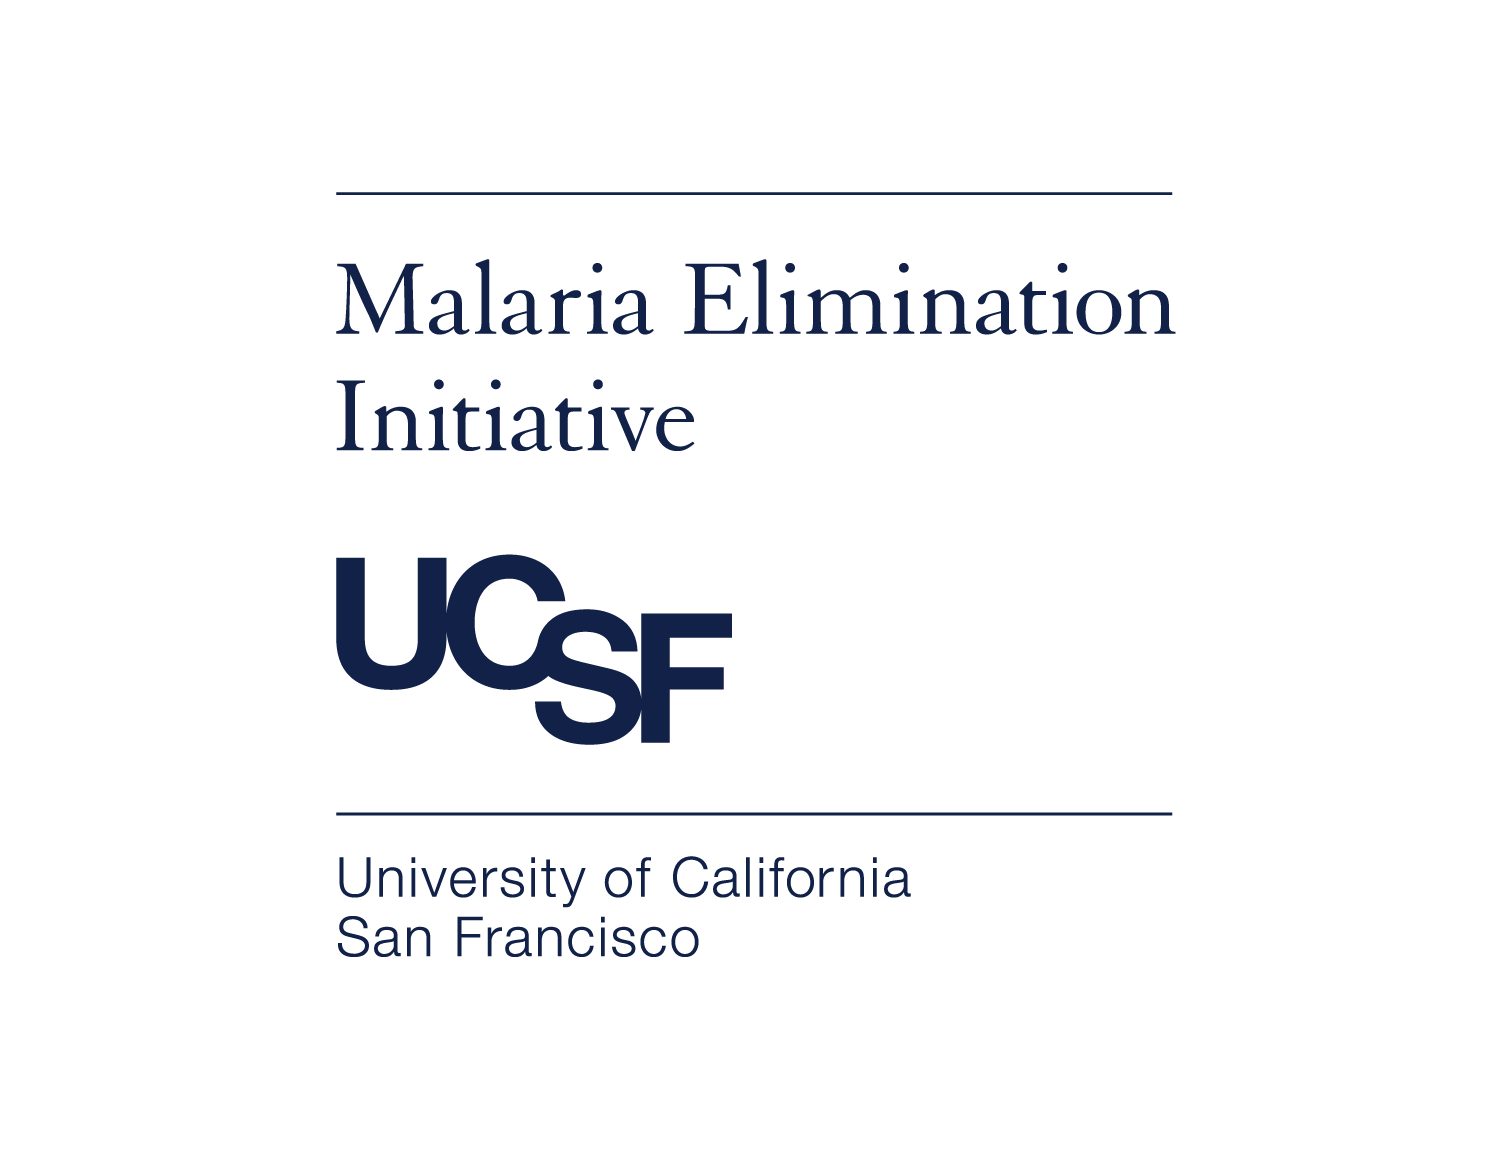 ucsf initiative example